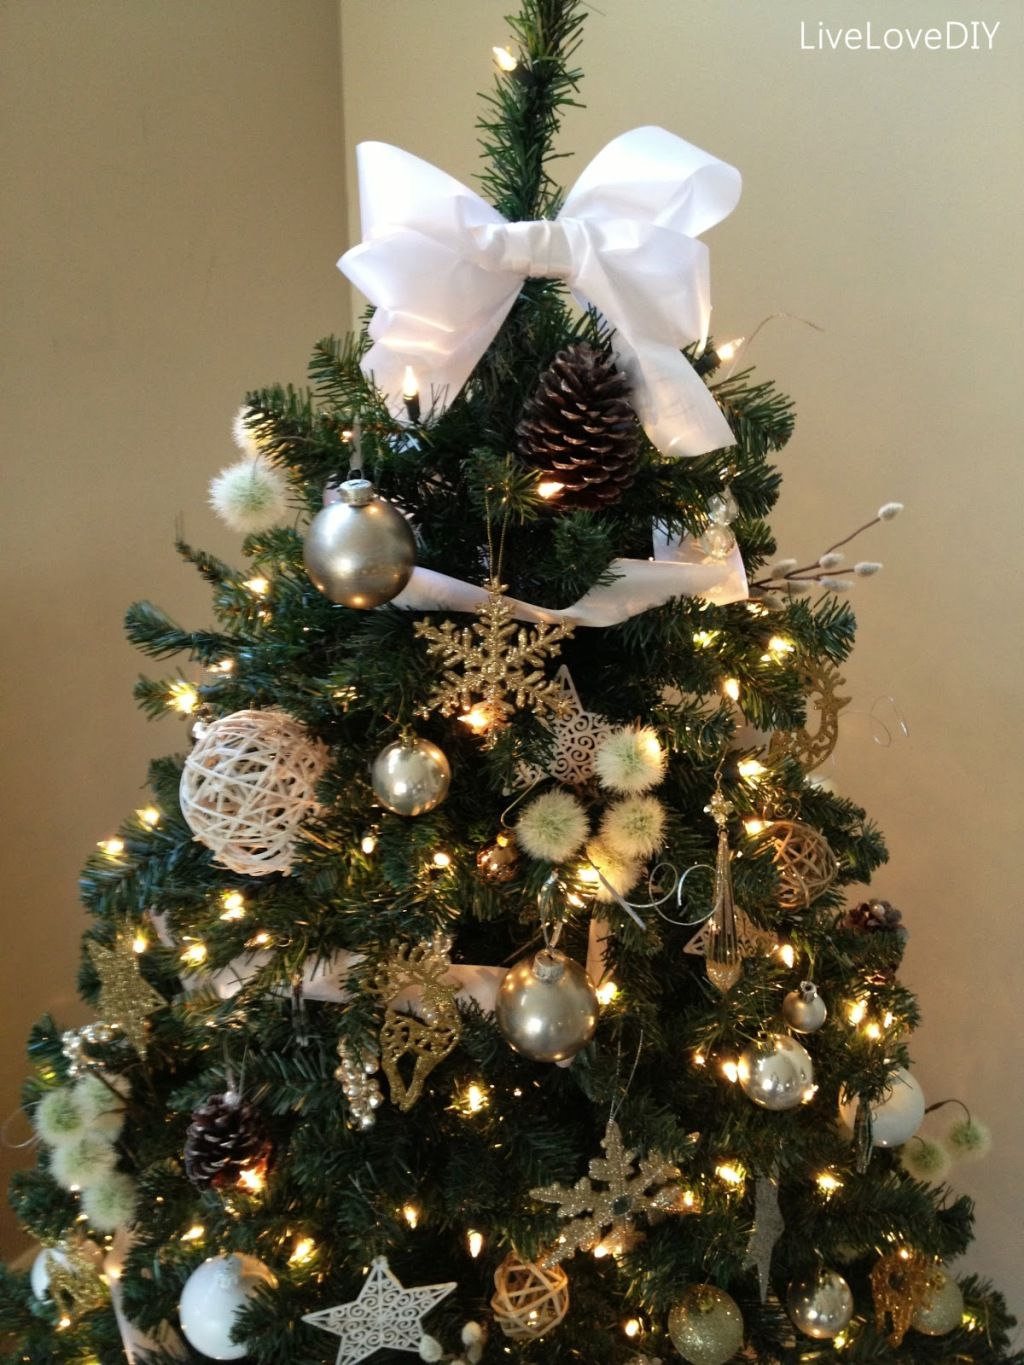 White christmas tree ball ornaments - Decorations Interior White Diy Christmas Tree Decorations Ideas With White Fabric Ribbon And Charming Christmas Balls